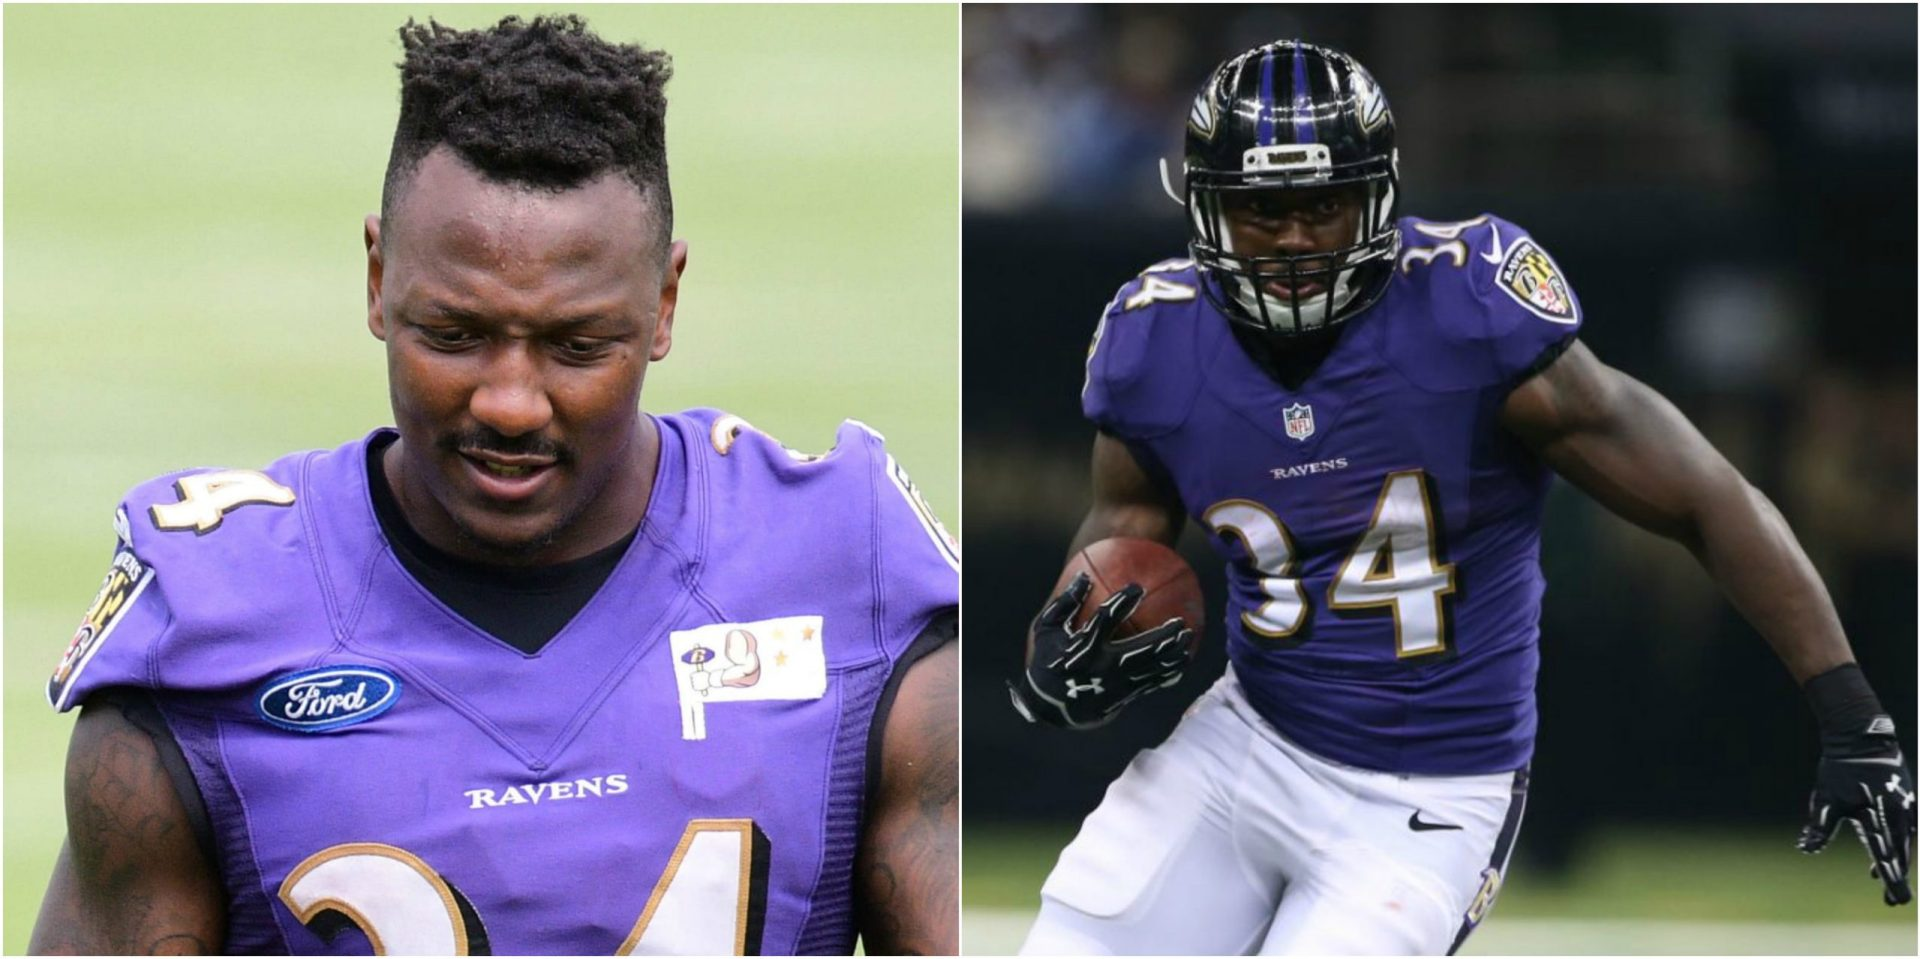 Former Ravens RB Lorenzo Taliaferro passes away due to heart attack at 28 years of age - THE SPORTS ROOM